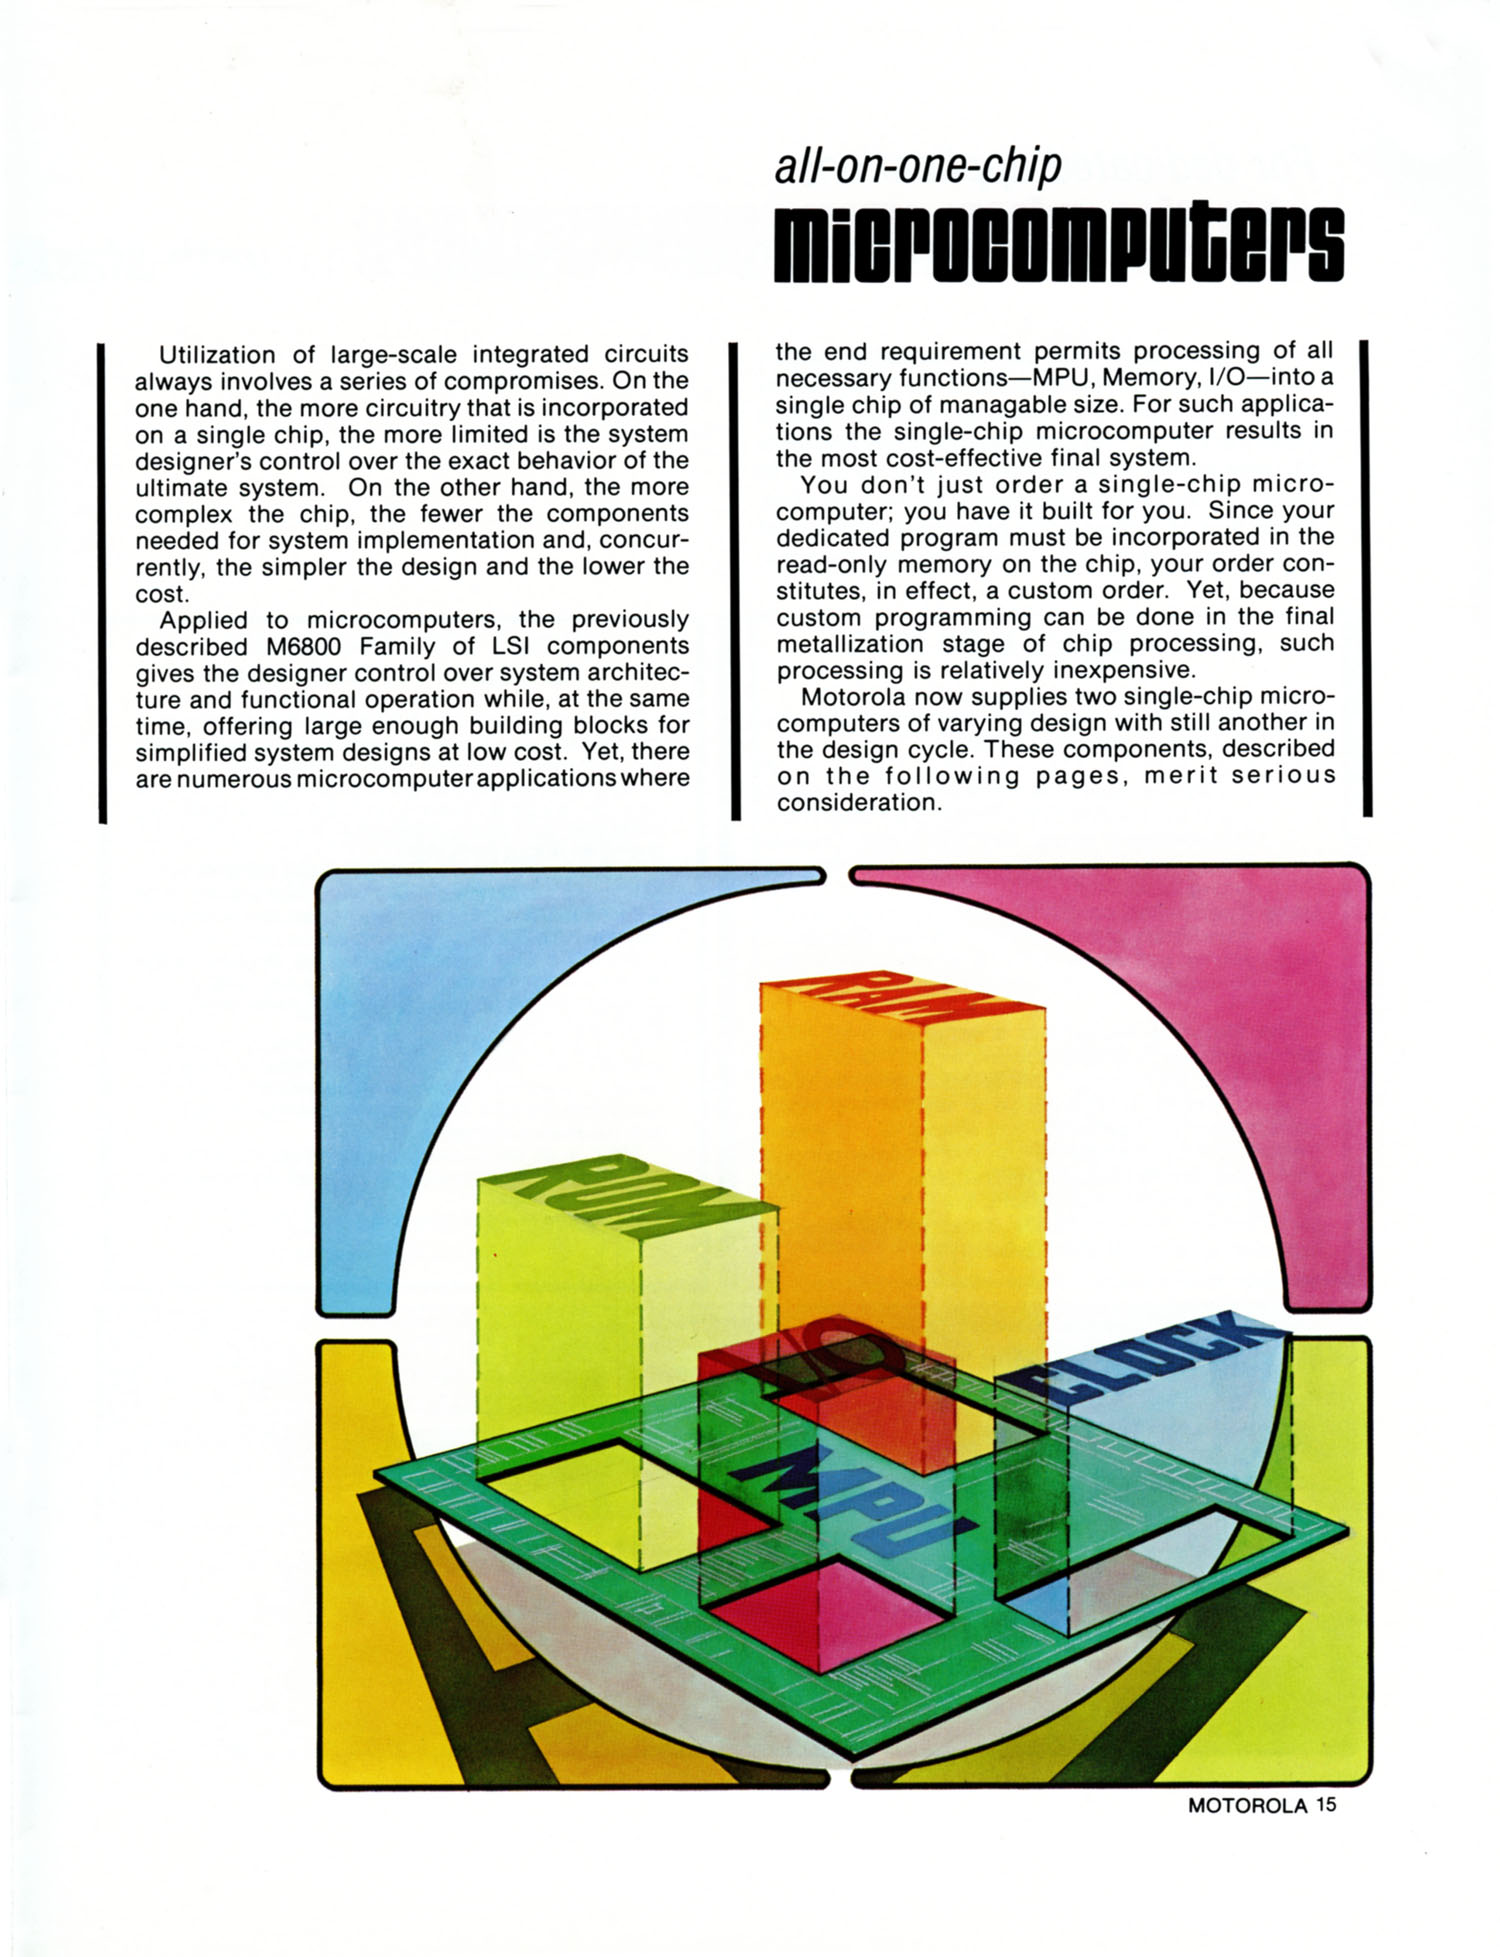 File:Motorola Microcomputer Components 1978 pg15.jpg - Wikimedia Commons